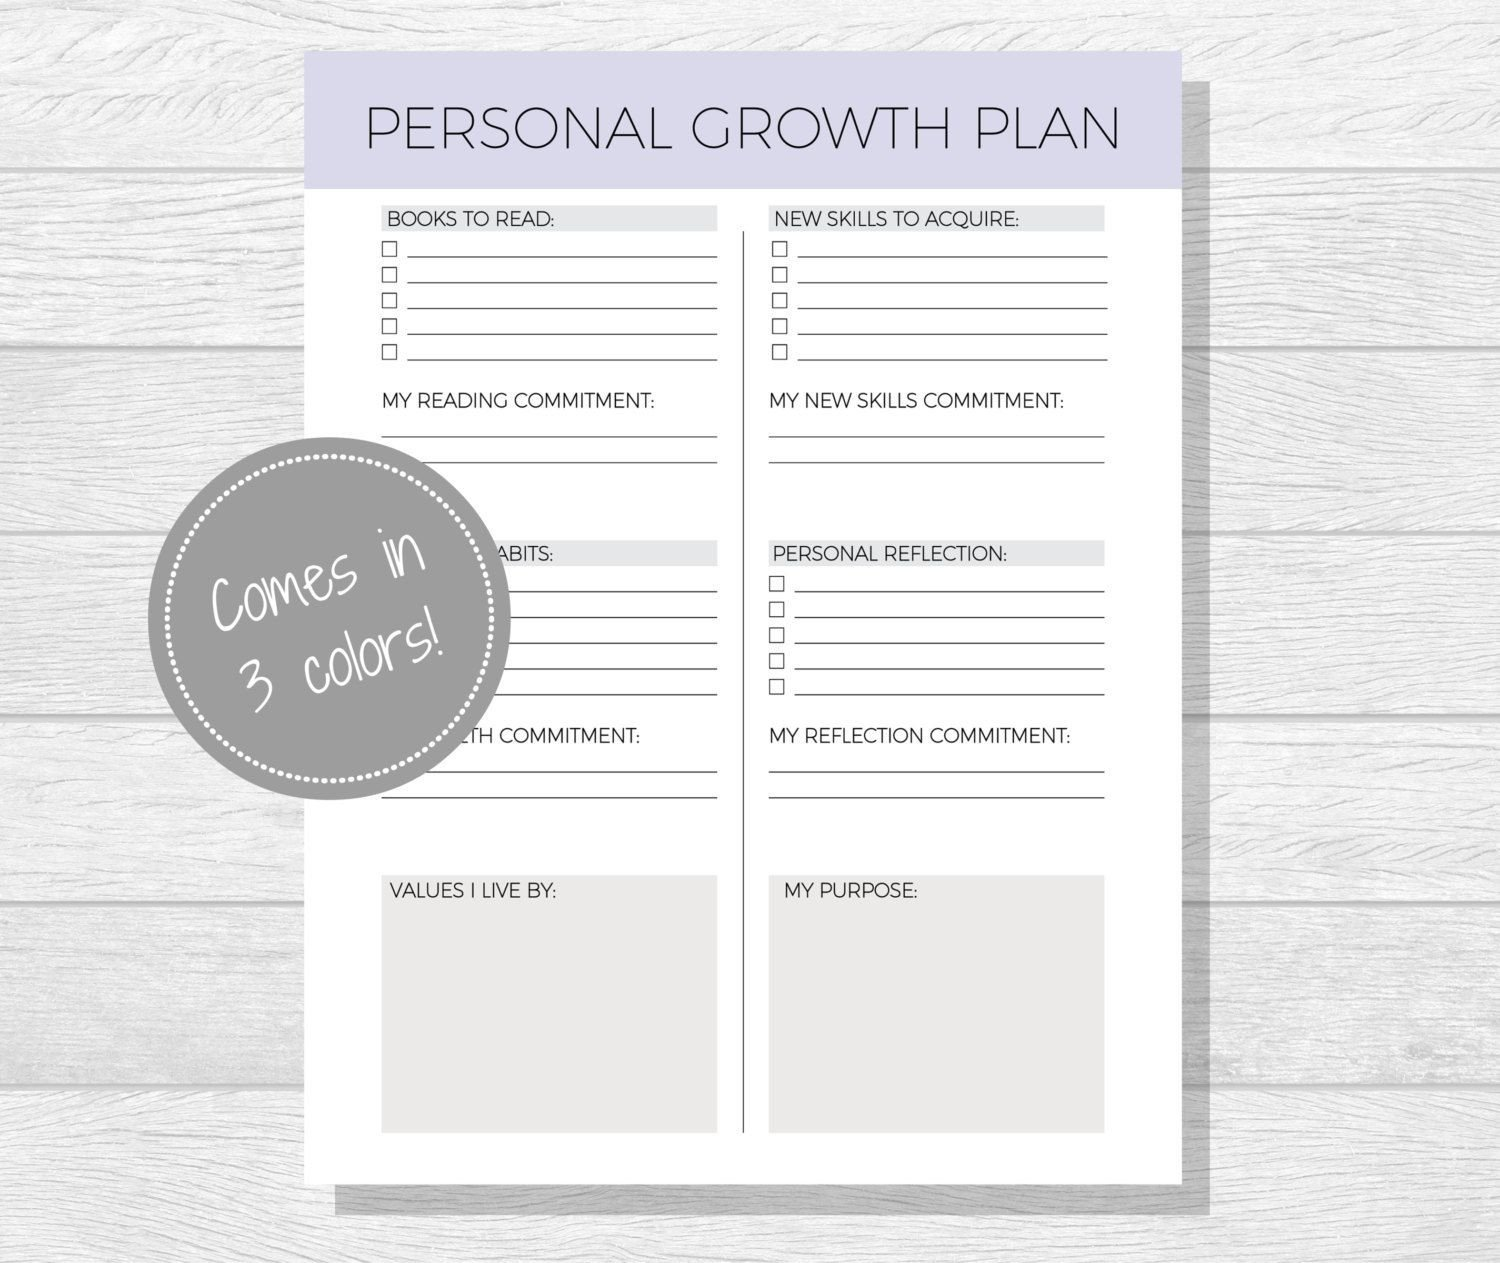 Personal Development Worksheets Personal Growth Plan Printable Personal Development Goal